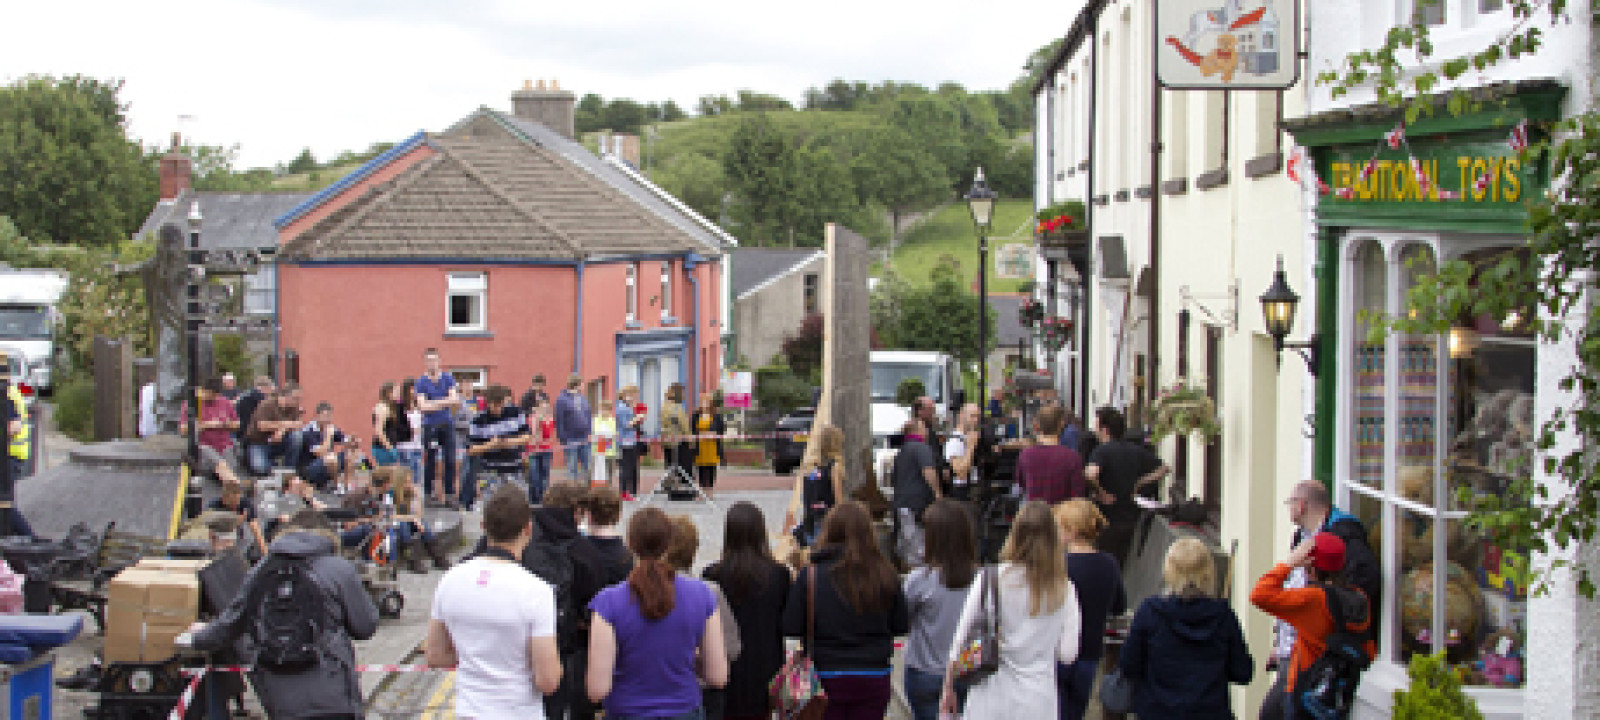 'Doctor Who' TV programme filming, Llantrisant, Wales, Britain –